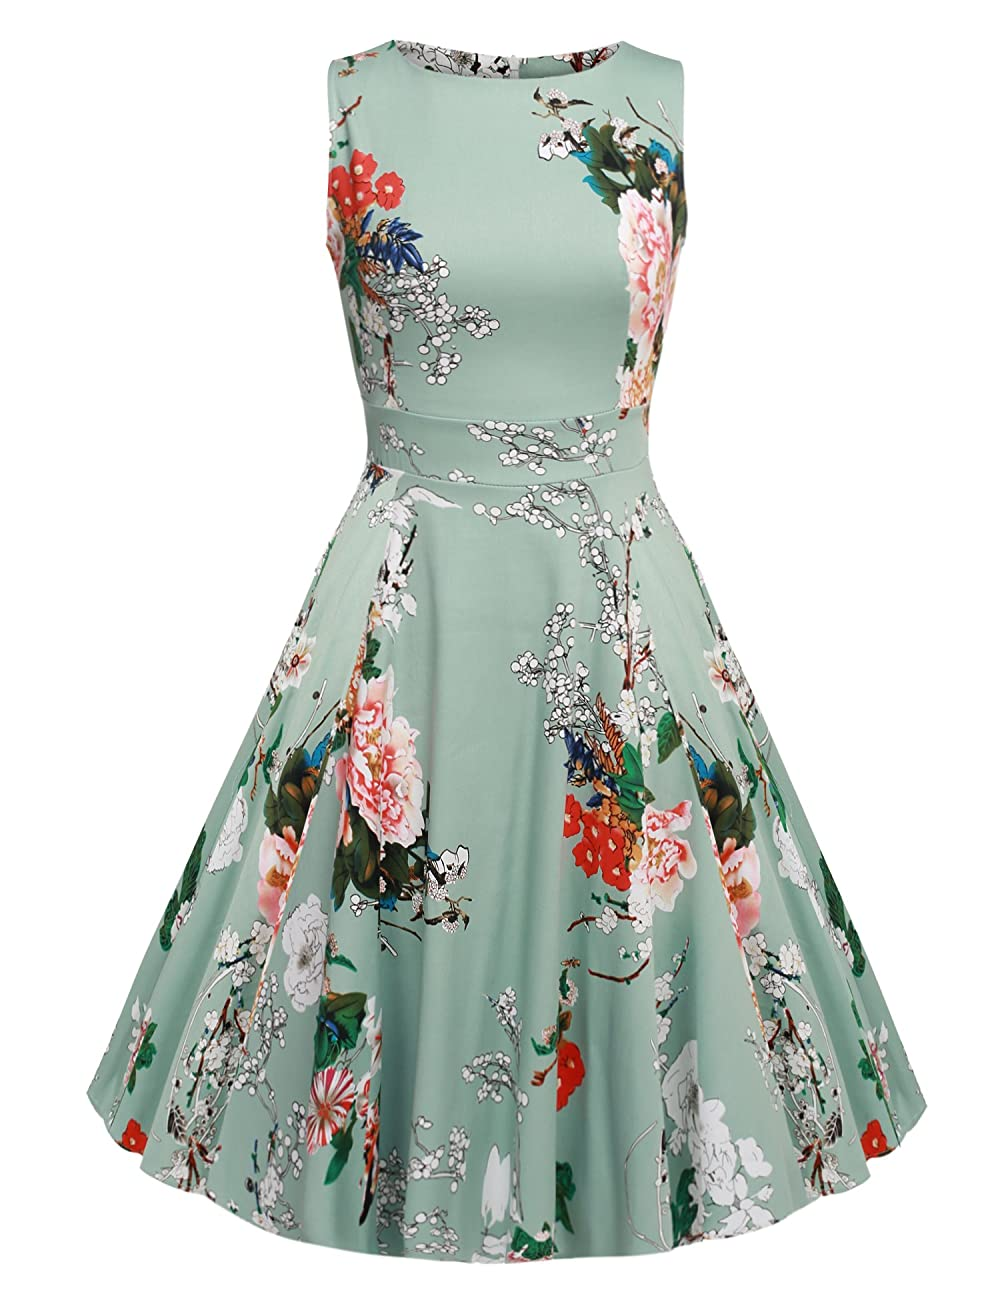 ACEVOG Vintage 1950's Floral Spring Garden Party Picnic Dress Party Cocktail Dress 0